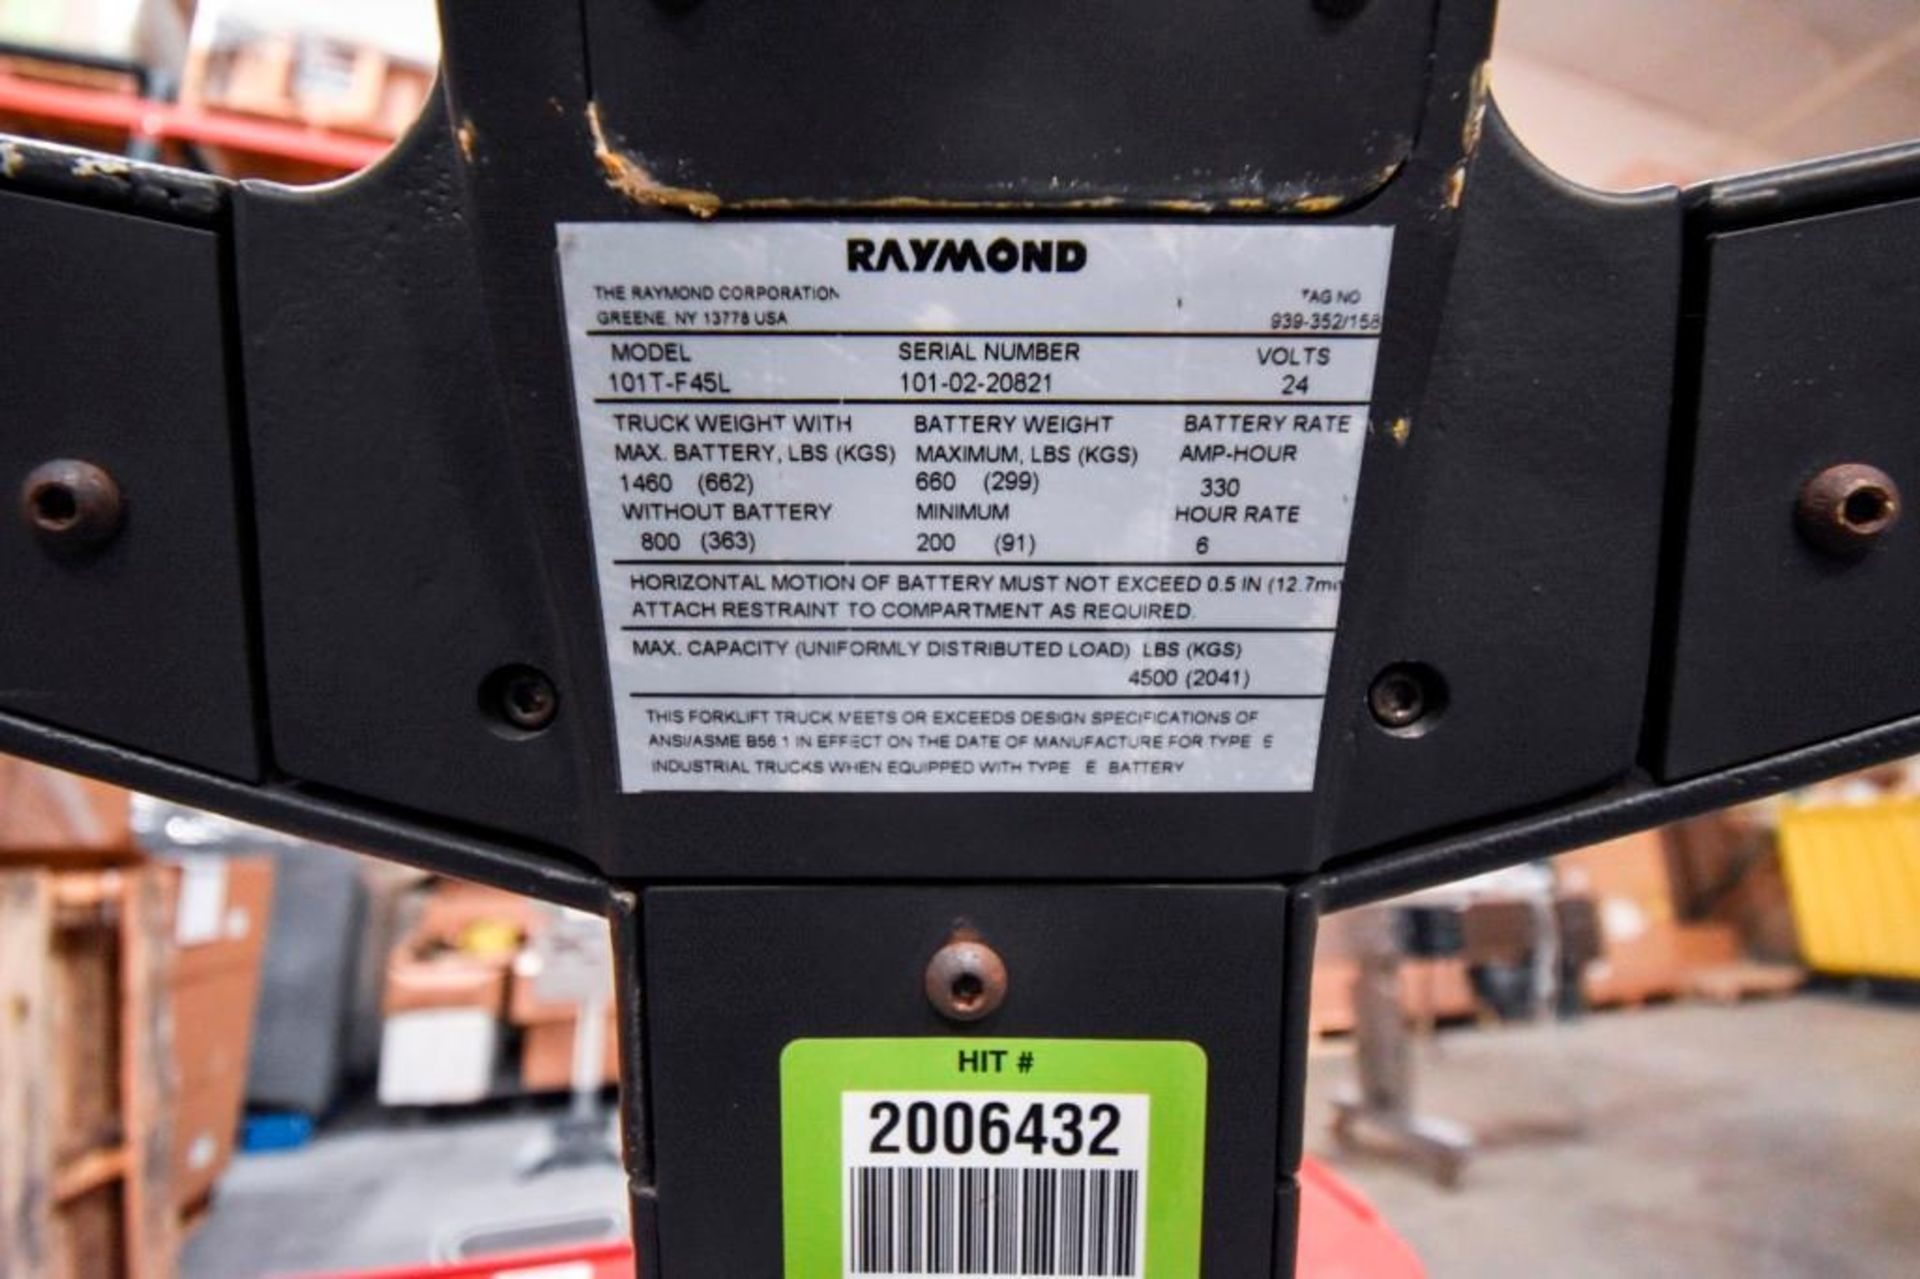 Raymond Electric Pallet Jack - Image 10 of 10